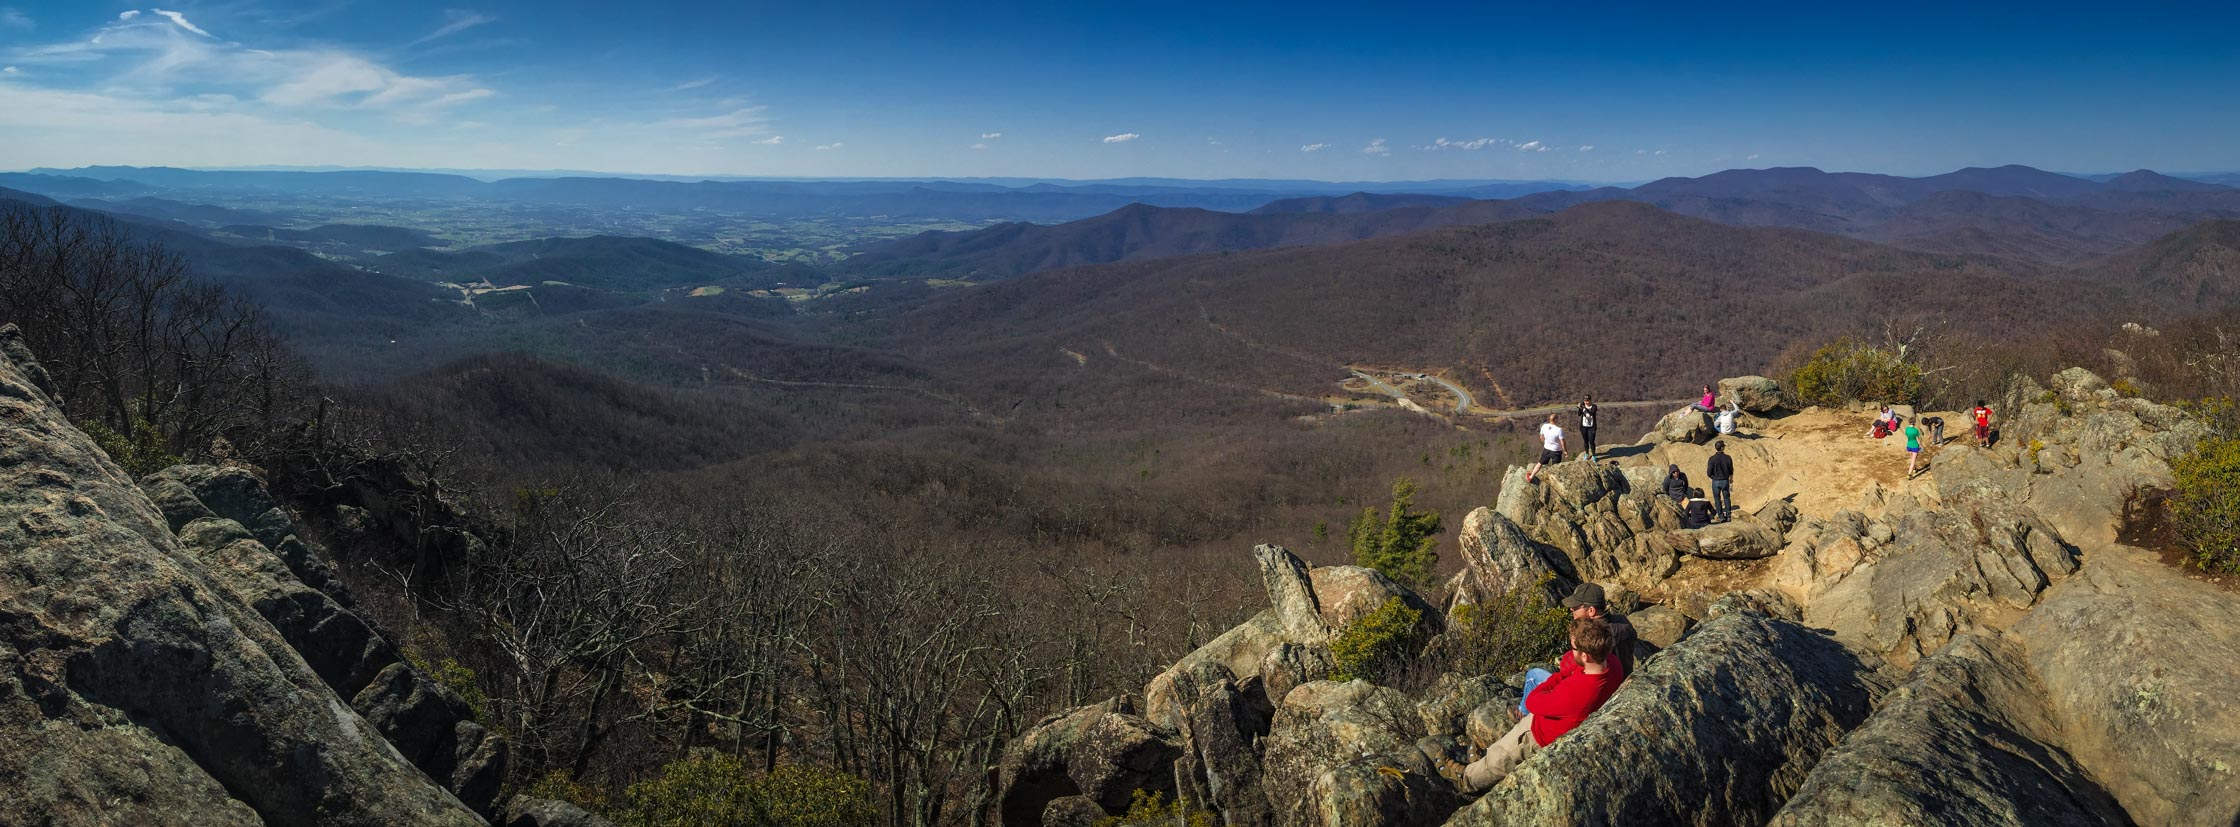 View from Mary's Rock